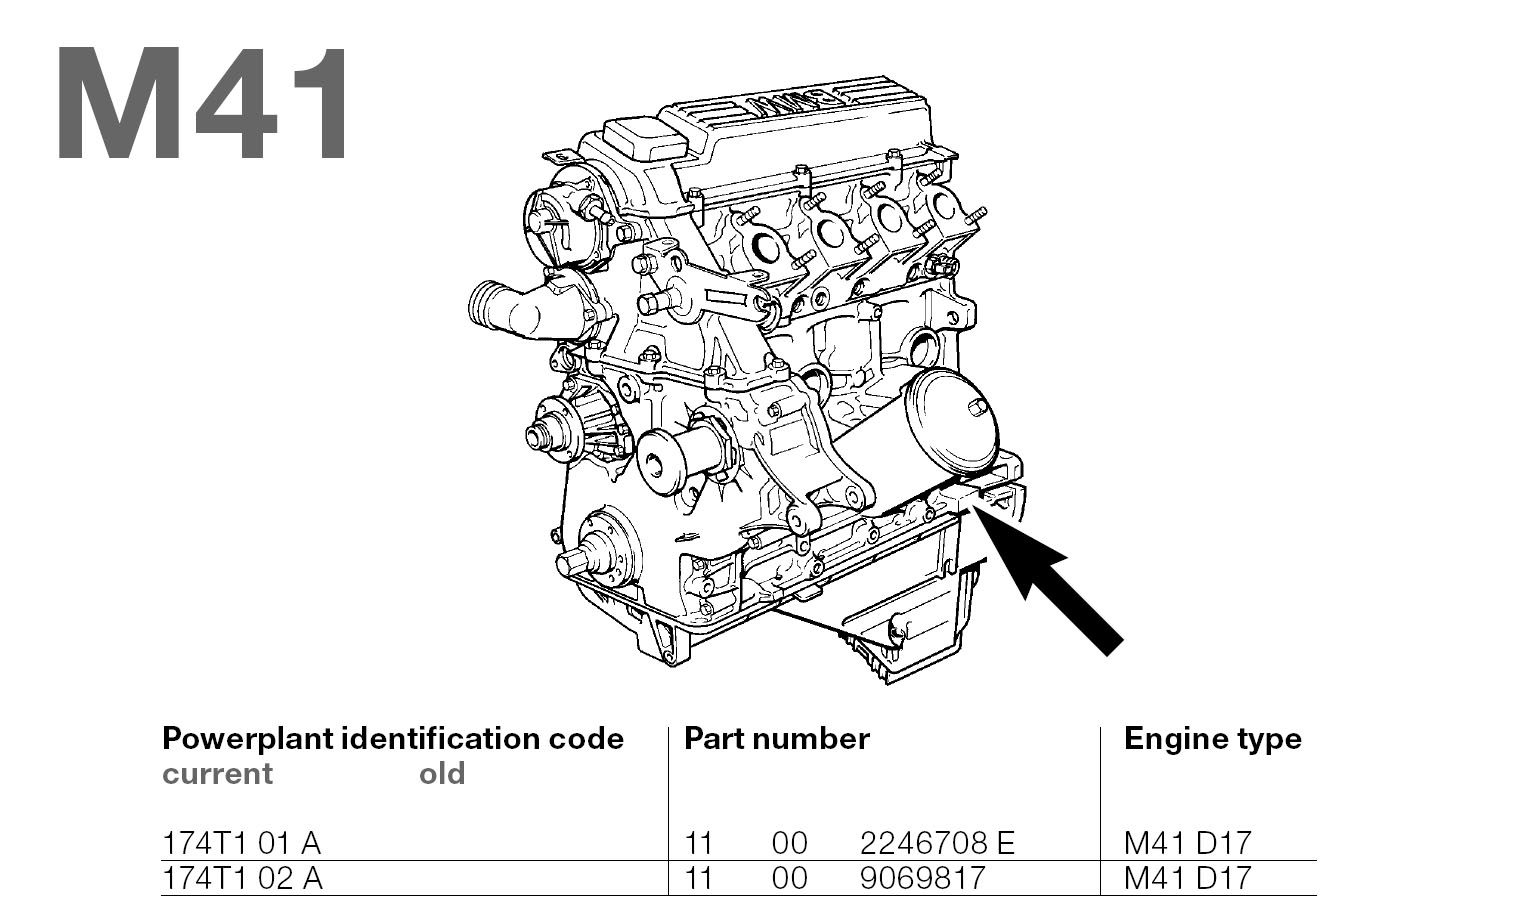 BMW M41 Engine Codes